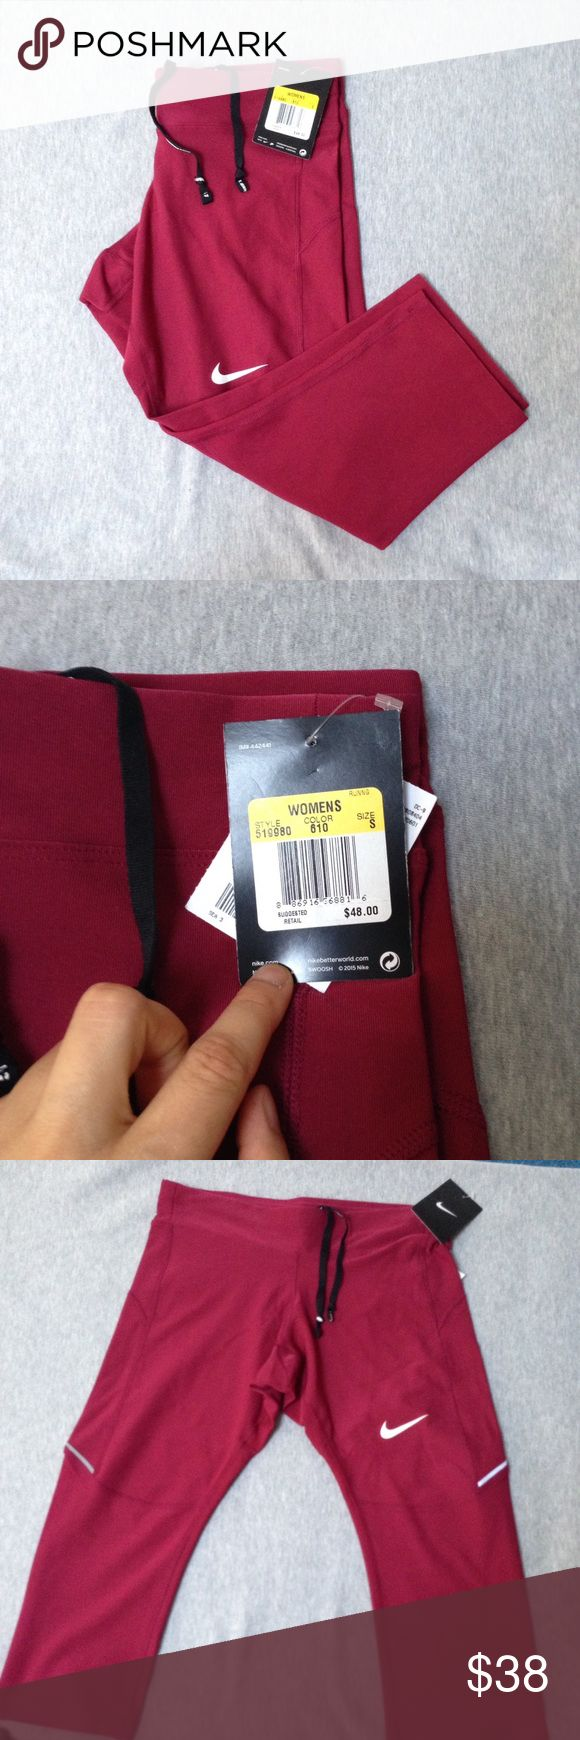 NWT Nike Running pants leggings size small Brand new with tags. Authentic Nike! CHECK OUT MY CLOSET FOR MORE DESIGNS SND SIZES! Maroon color with zipper pocket on the back Nike Pants Leggings